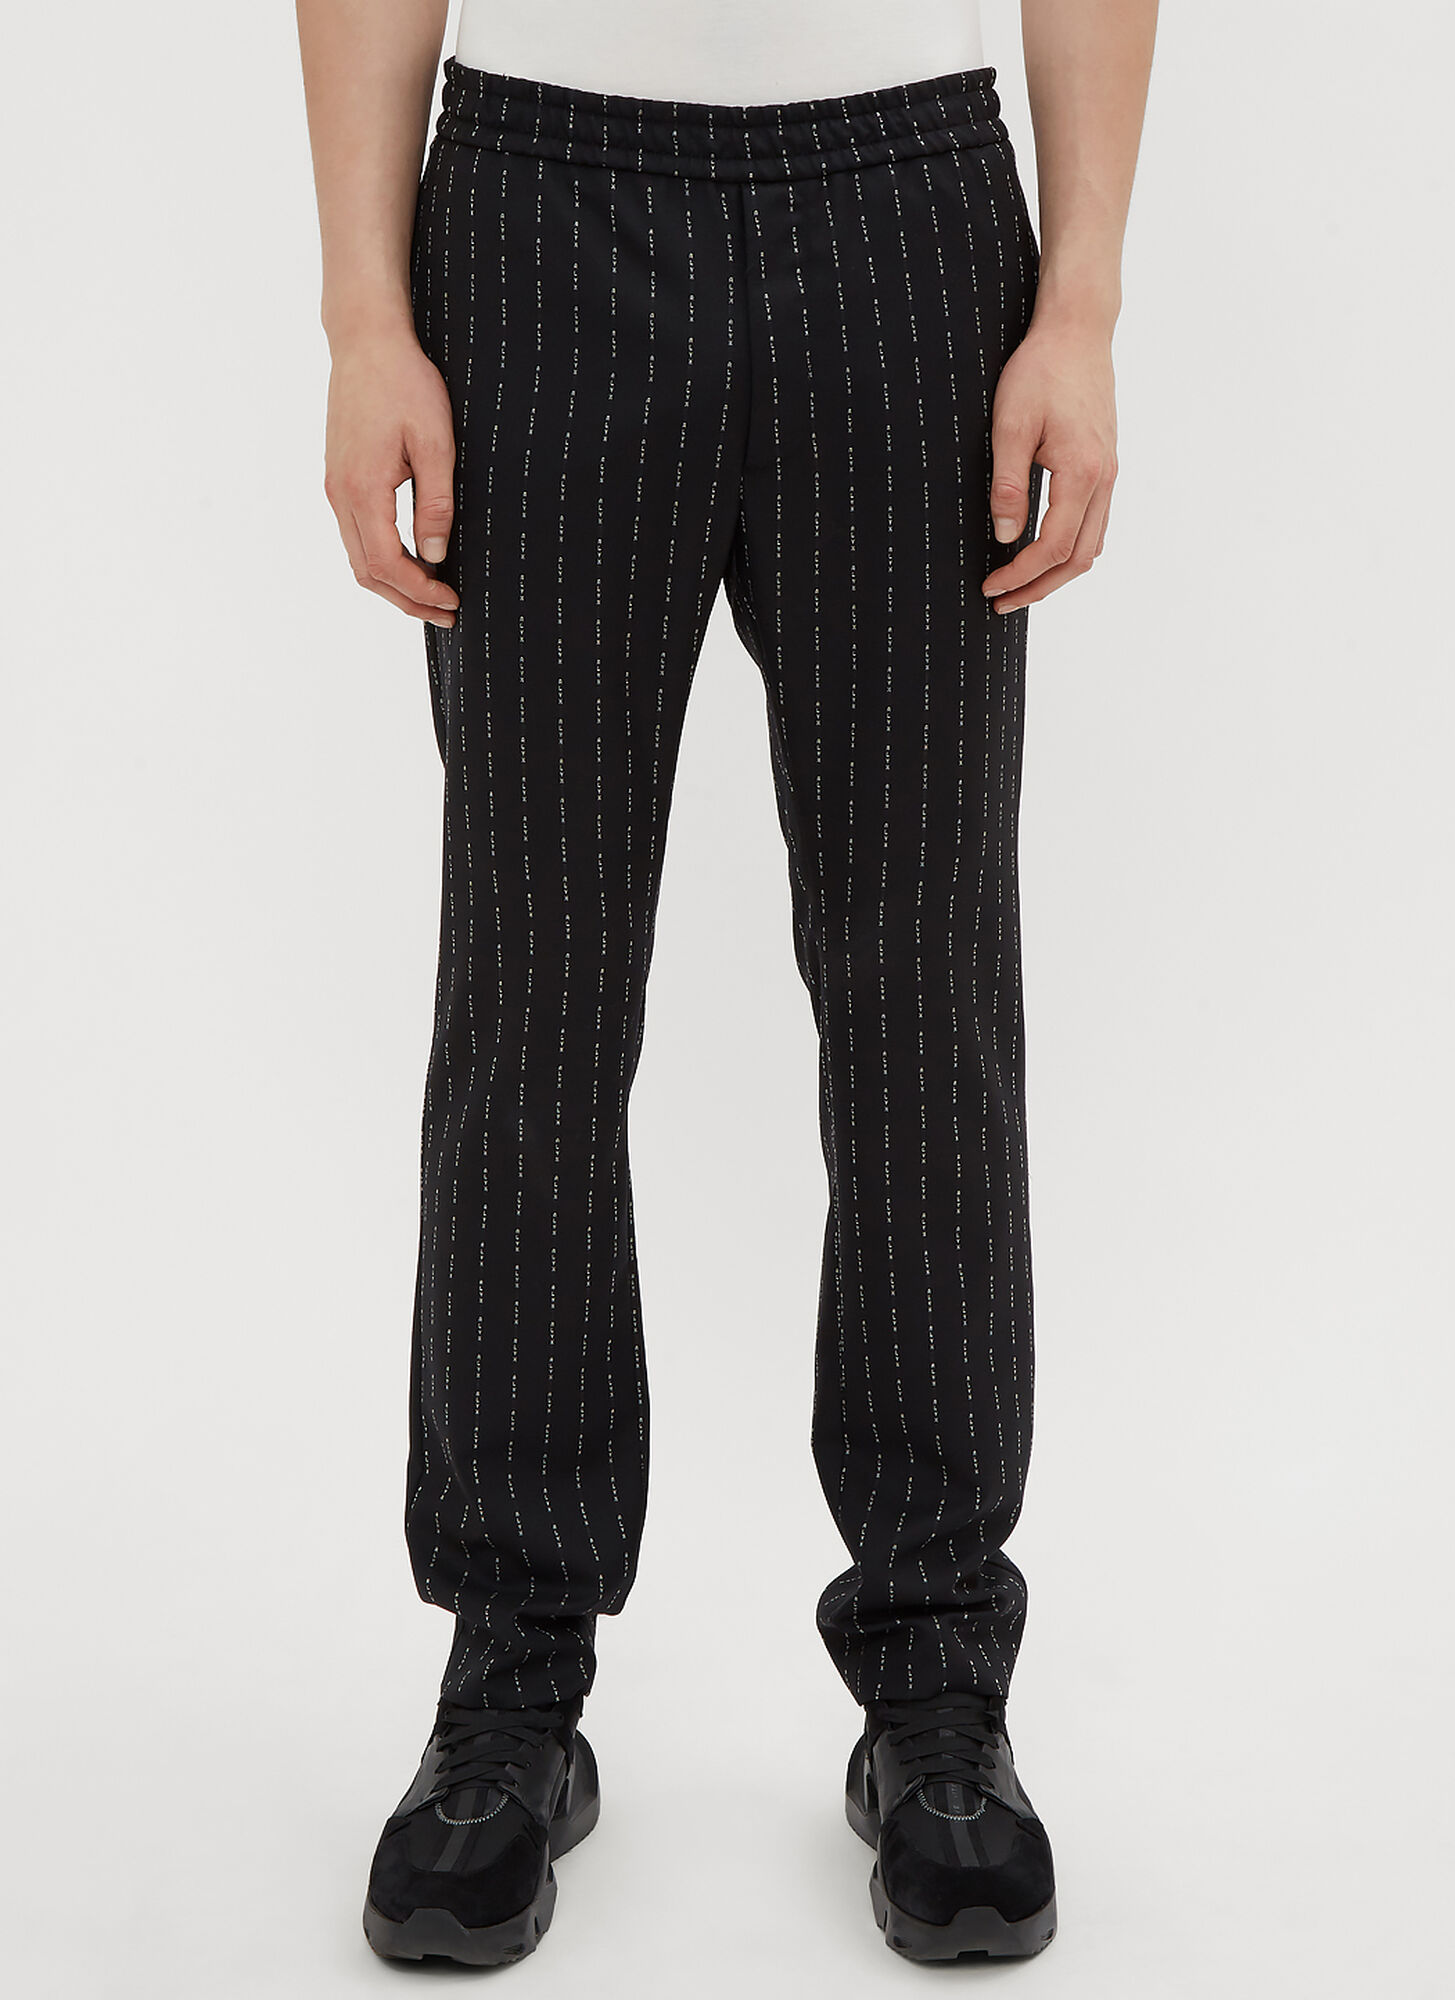 1017 ALYX 9SM Logo Jacquard Pants in Black size XL